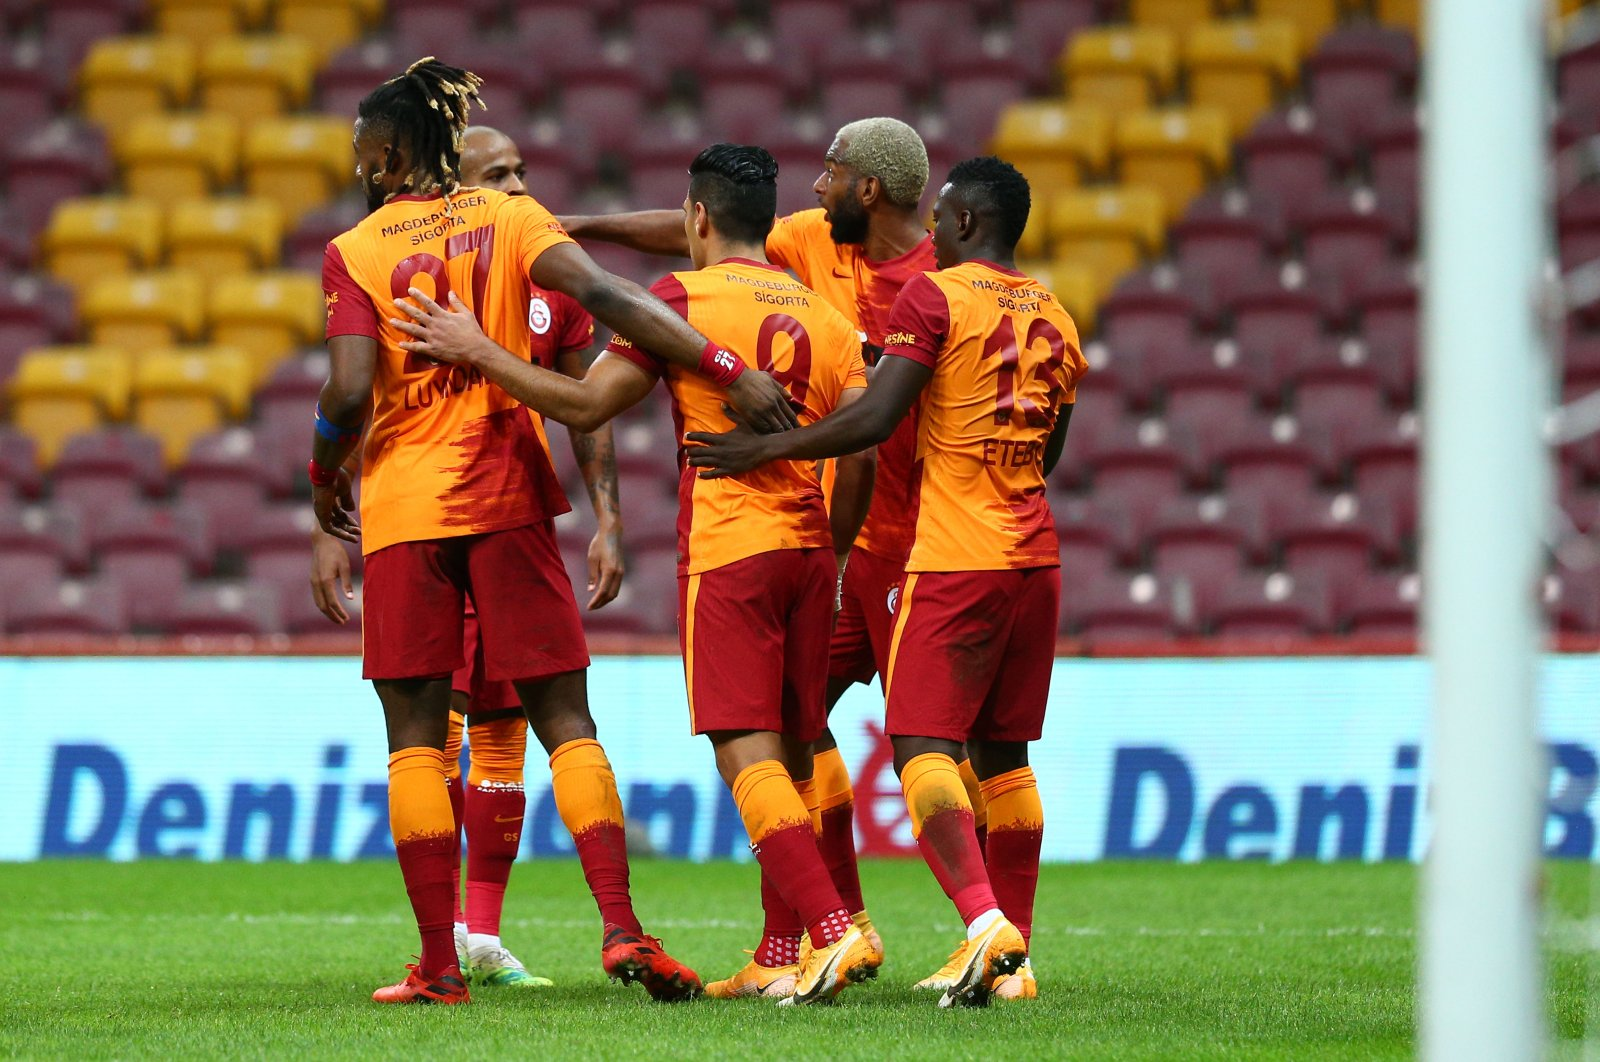 Galatasaray players celebrate in front of empty stands during a Süper Lig match against Alanyaspor, in Istanbul, Turkey, Oct. 19, 2020. (AA Photo)